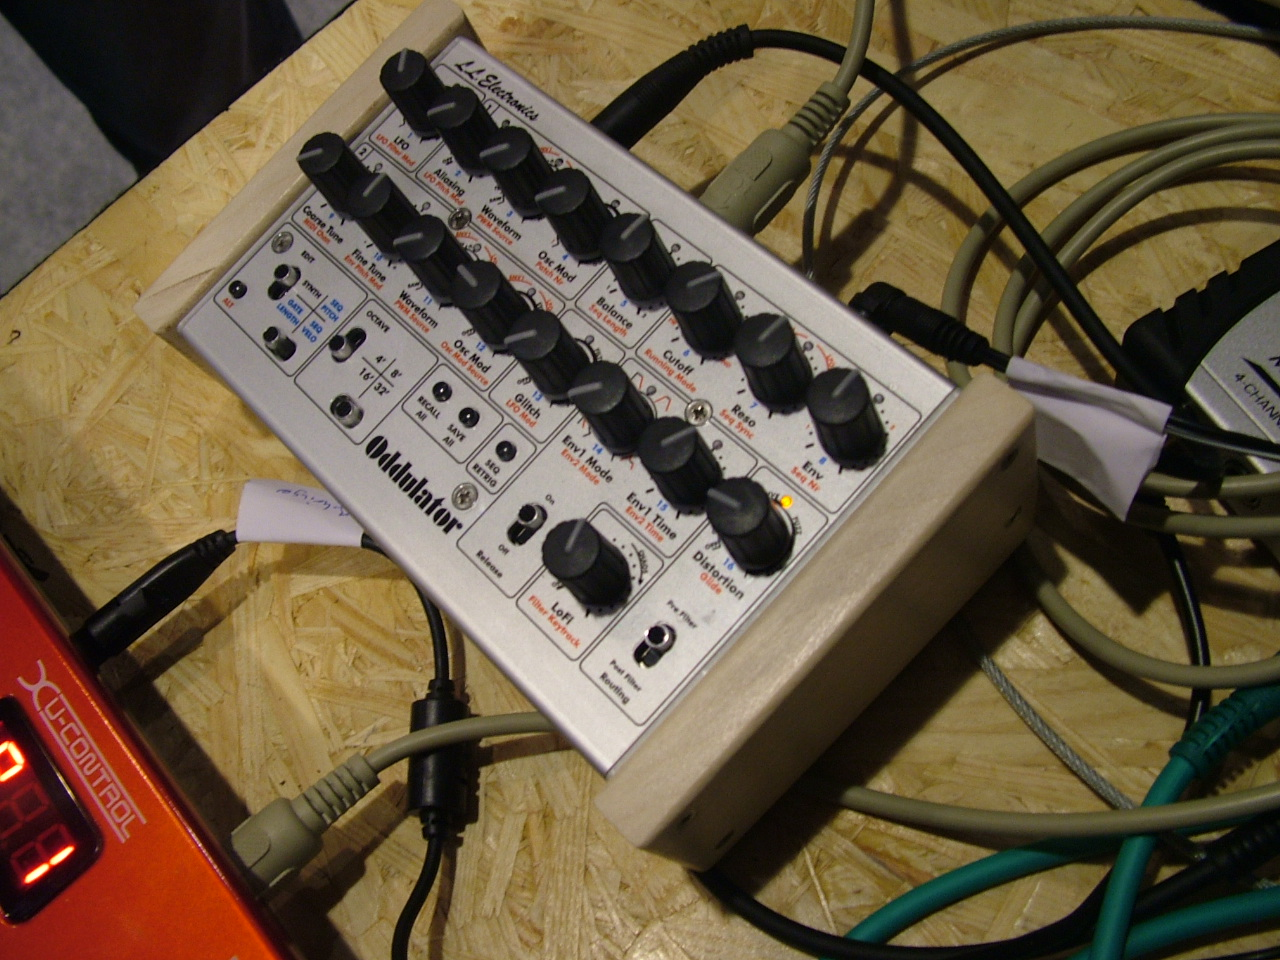 LL RozzboxOddulator synthesizer